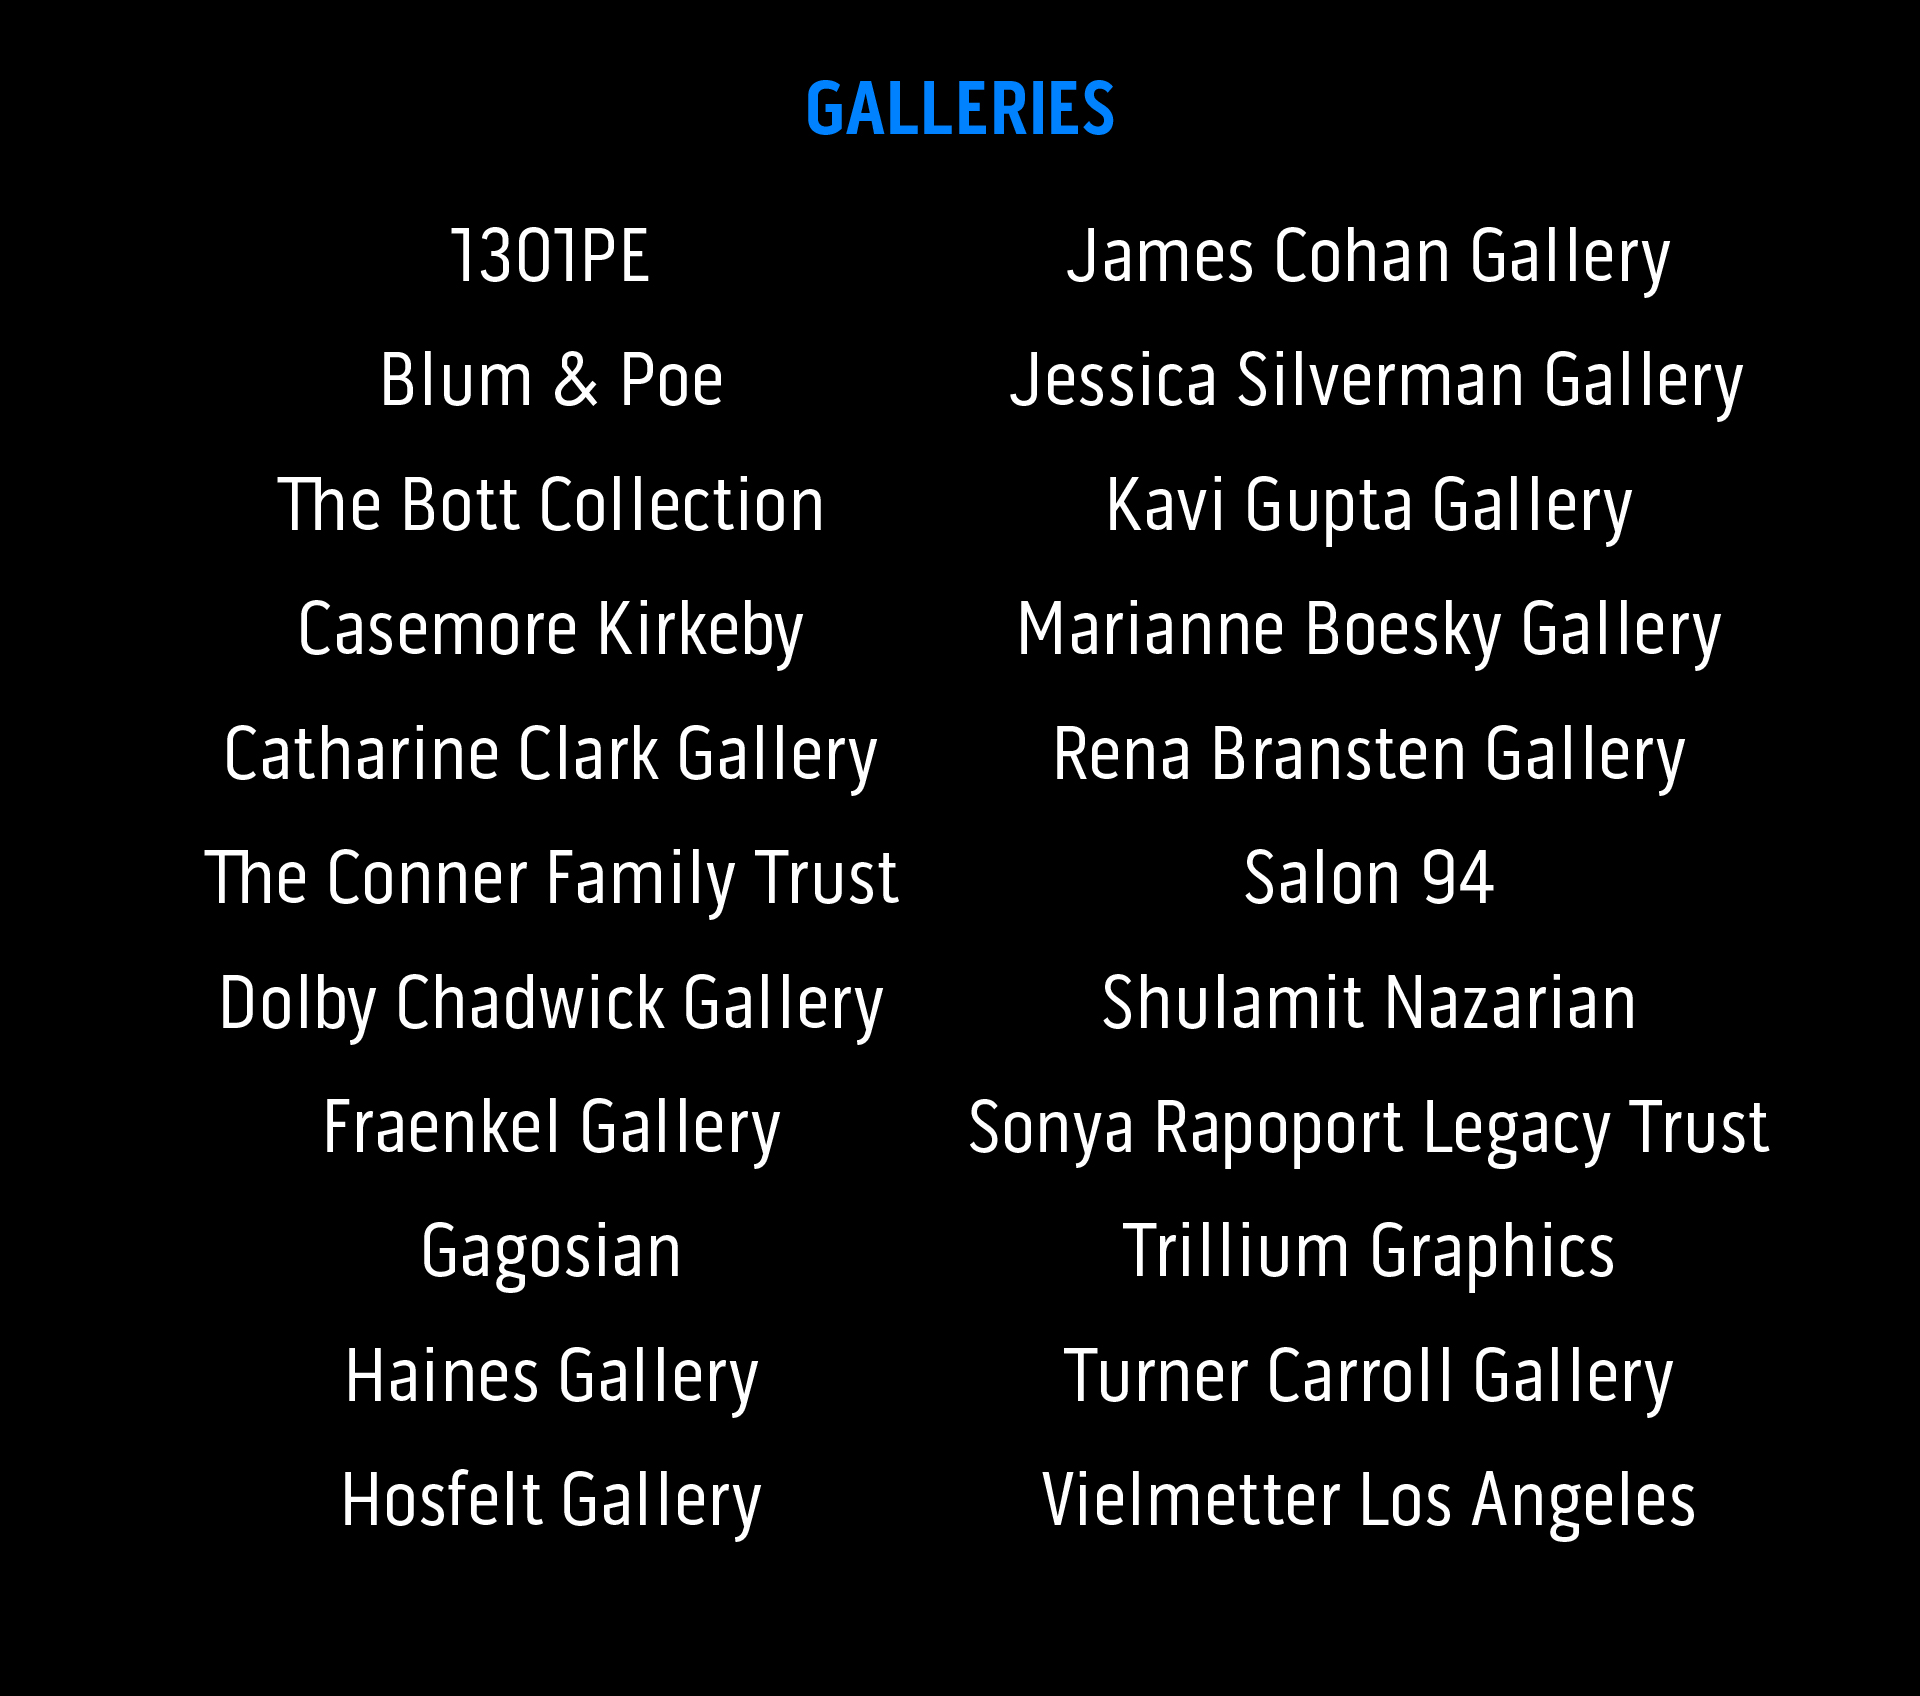 List of gallery names